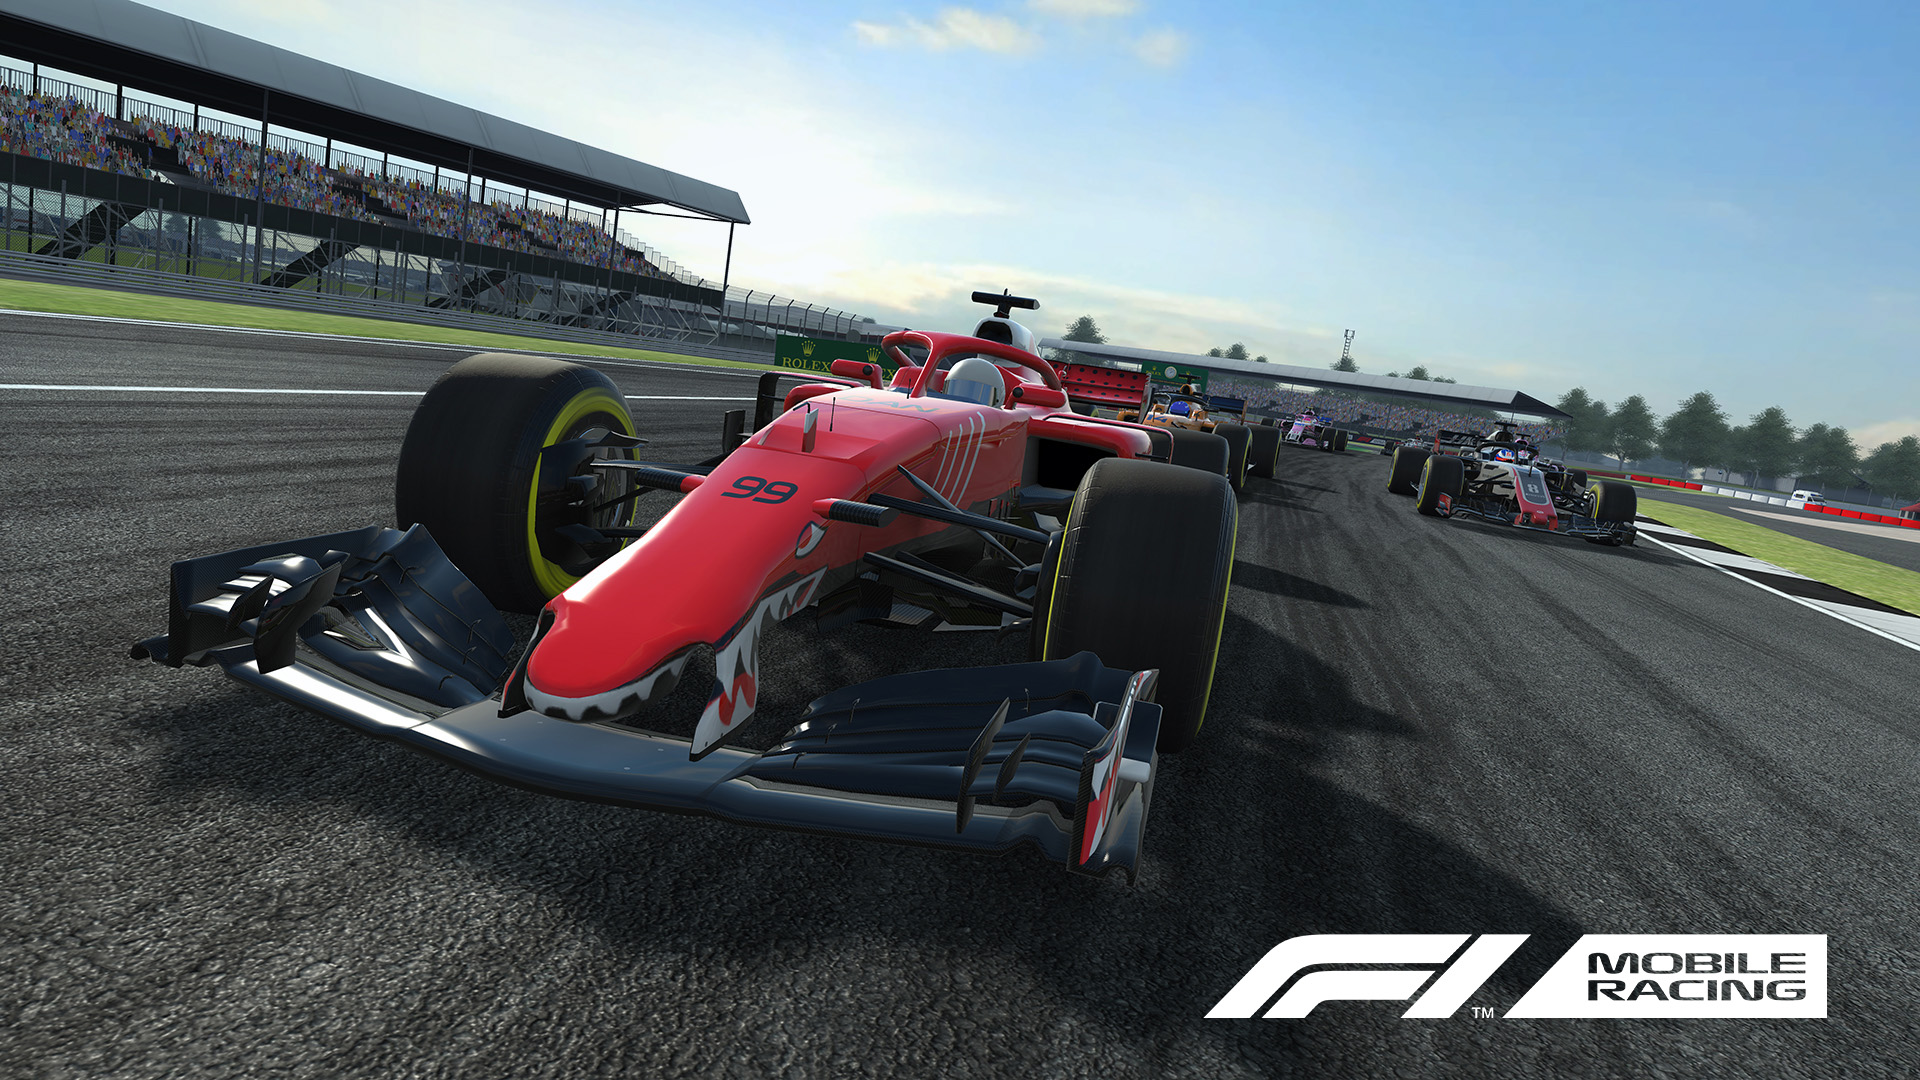 F1 Mobile Racing hack cheat with unlimited resources